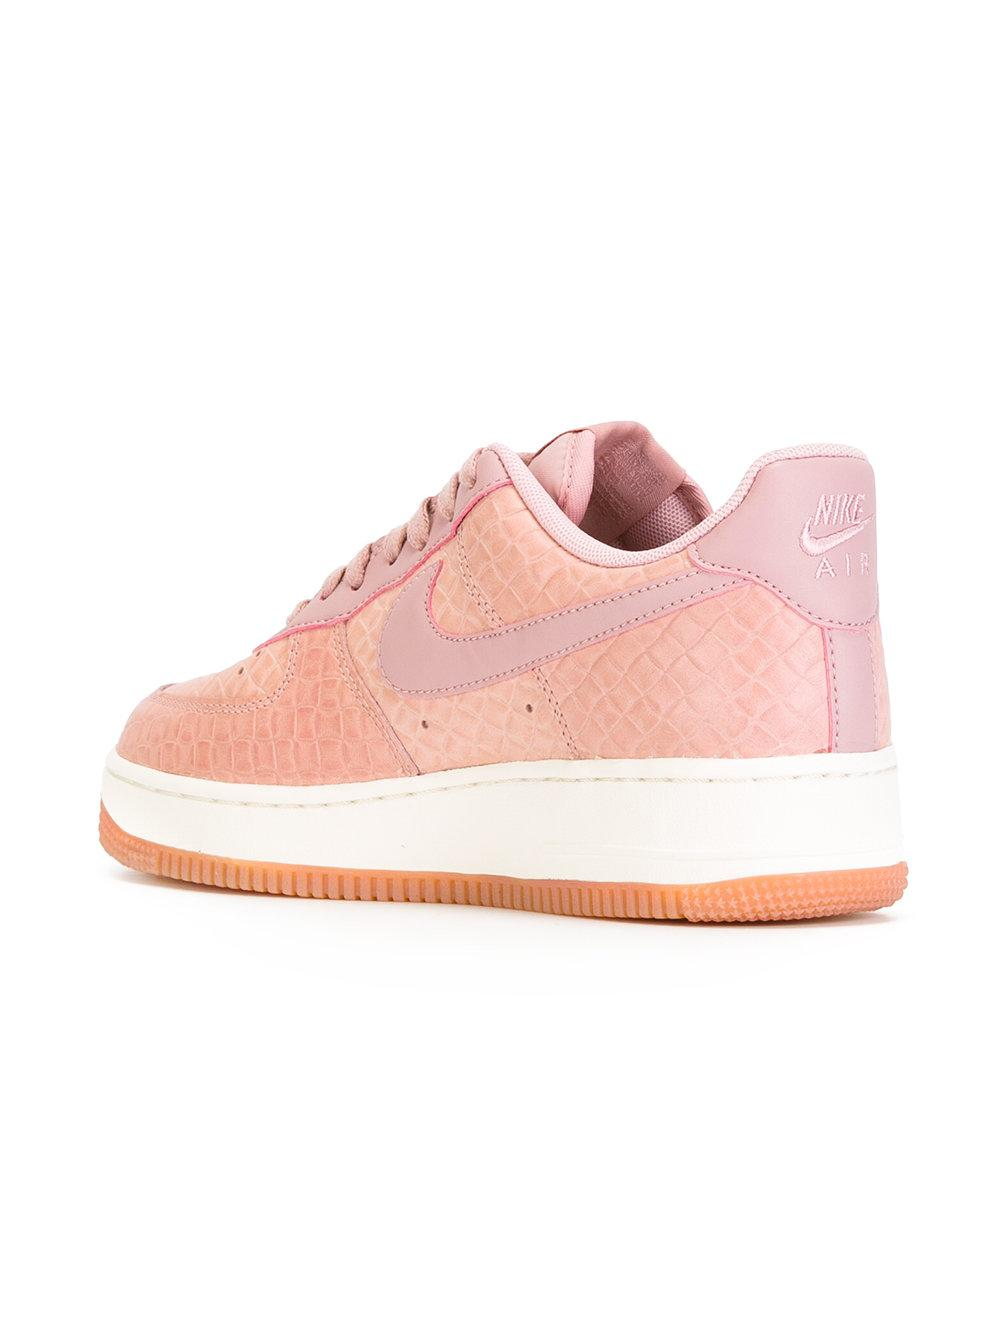 Nike Air Force 1 07 Premium W shoes pink